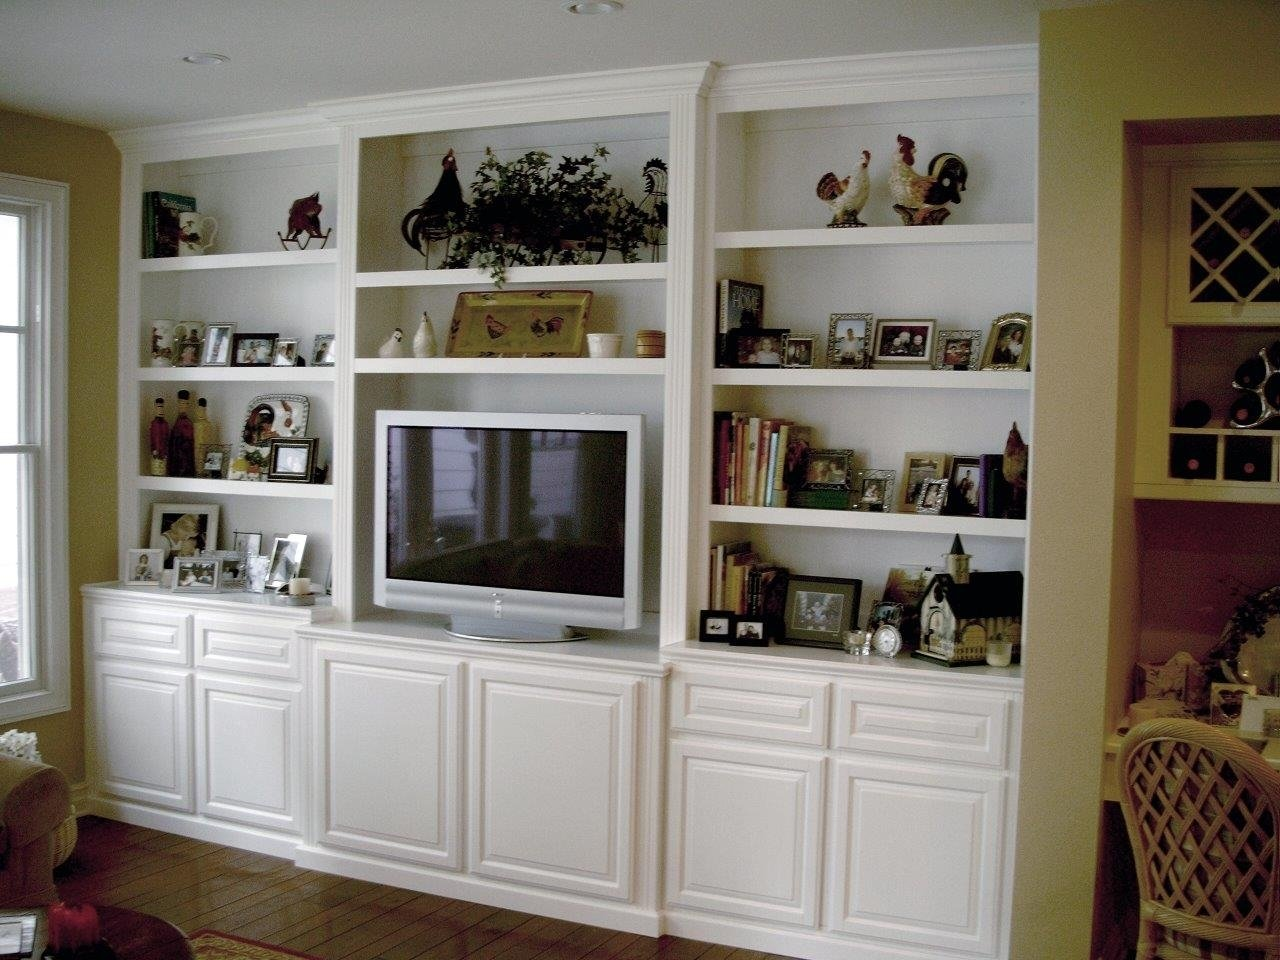 10 Awesome Built In Entertainment Center Ideas wall units built in entertainment center built in entertainment